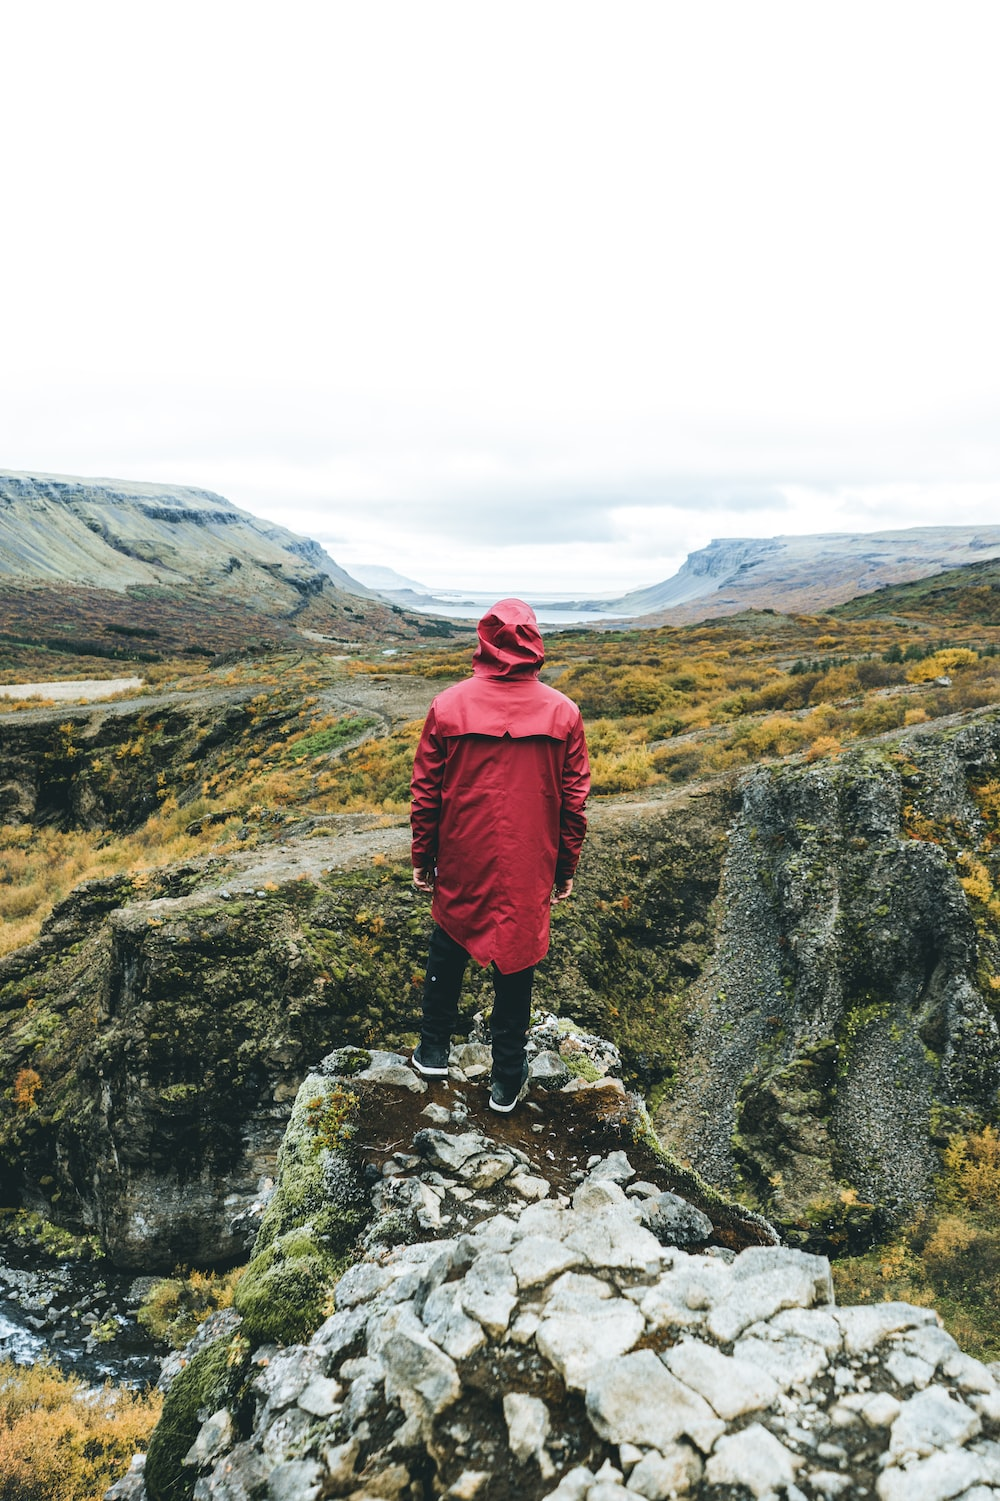 man standing wearing red jacket on top of mountain